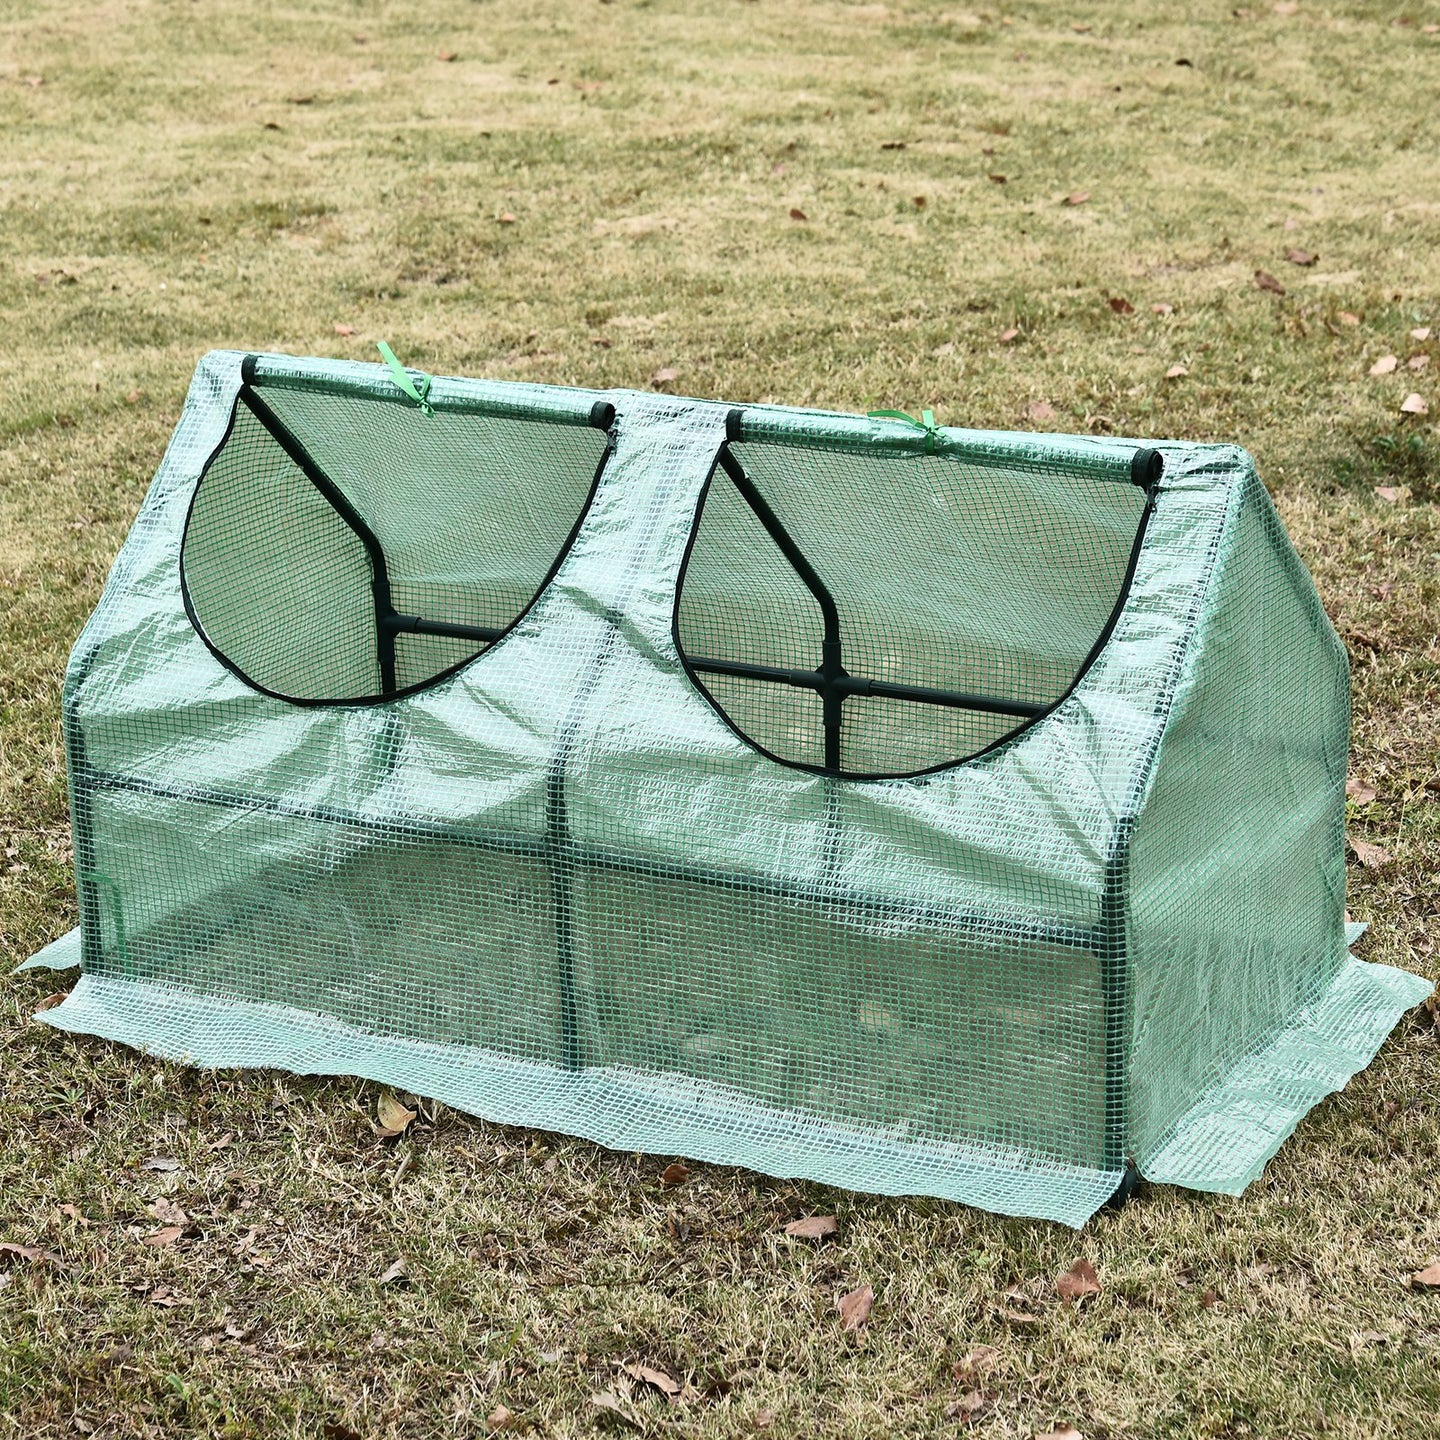 Outsunny Greenhouse W/ 2 Windows, 120Lx60Wx60H cm, Steel Frame-Green